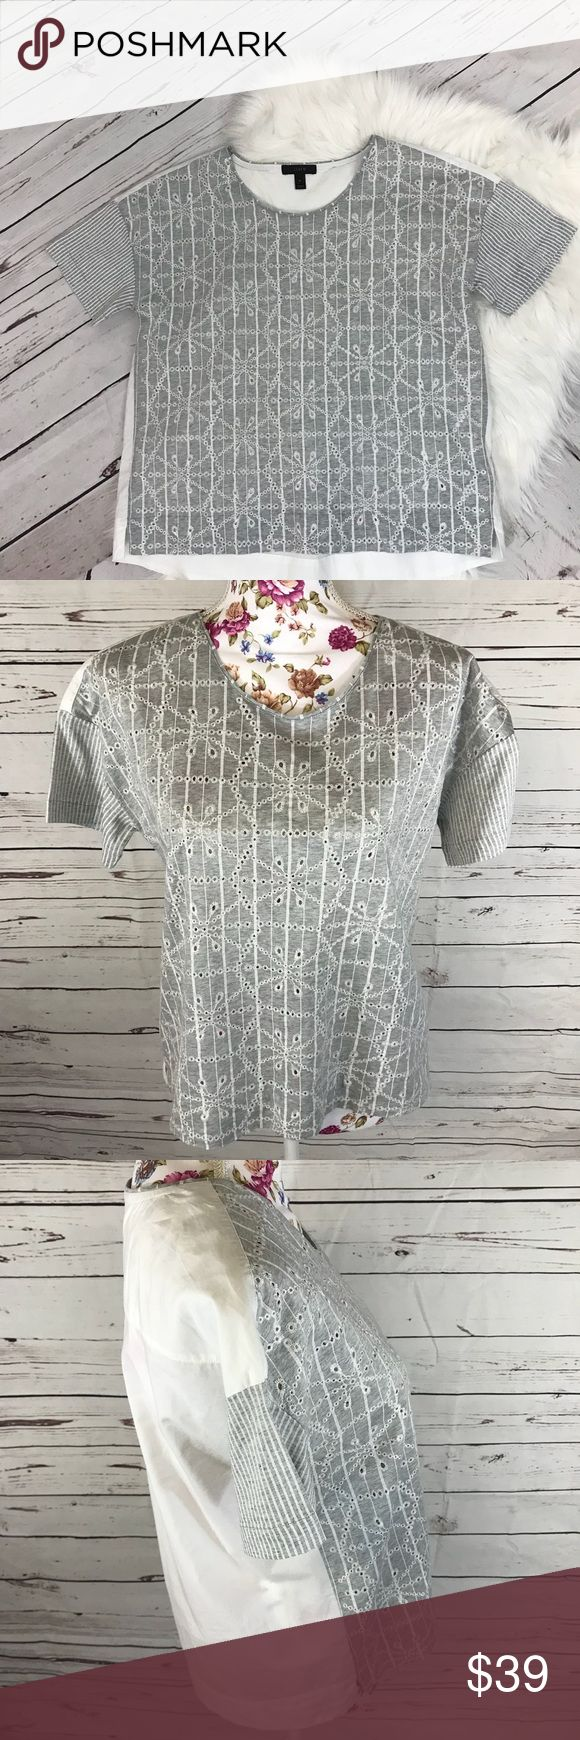 J. Crew small gray/white eyelet striped blouse J. Crew small gray/white eyelet striped blouse Size small Front is embroidered eyelets on striped background, striped sleeves, white back excellent condition - wash tag has not even been removed J. Crew Tops Blouses